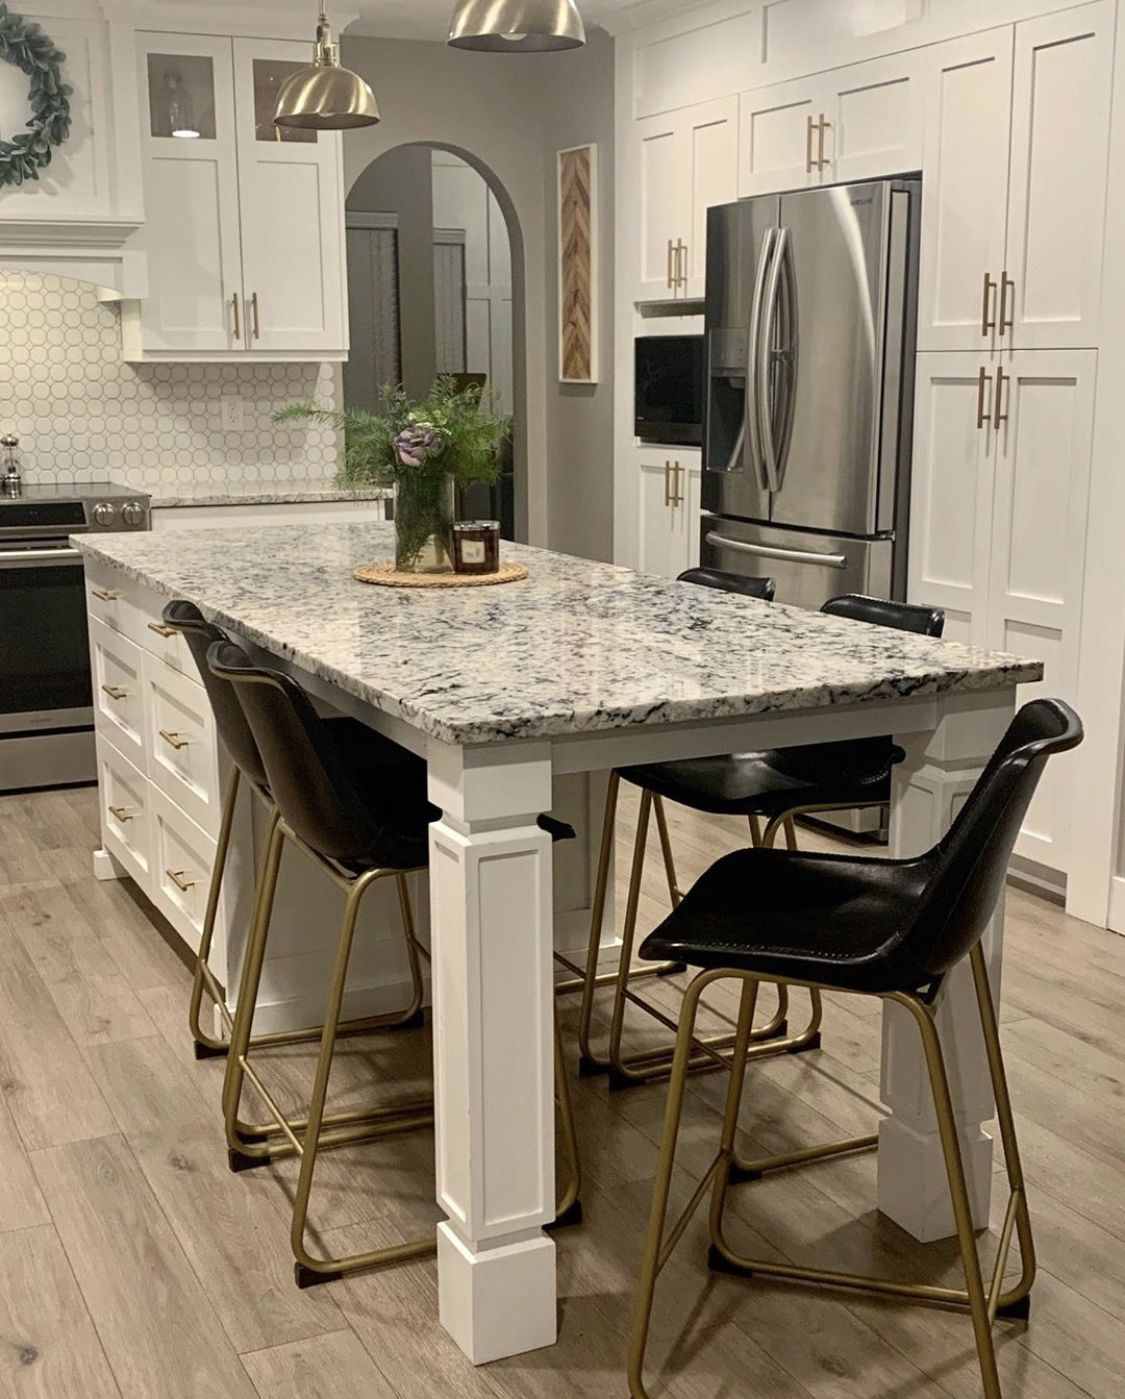 Granite Countertop Warehouse Offers Discounted Granite And